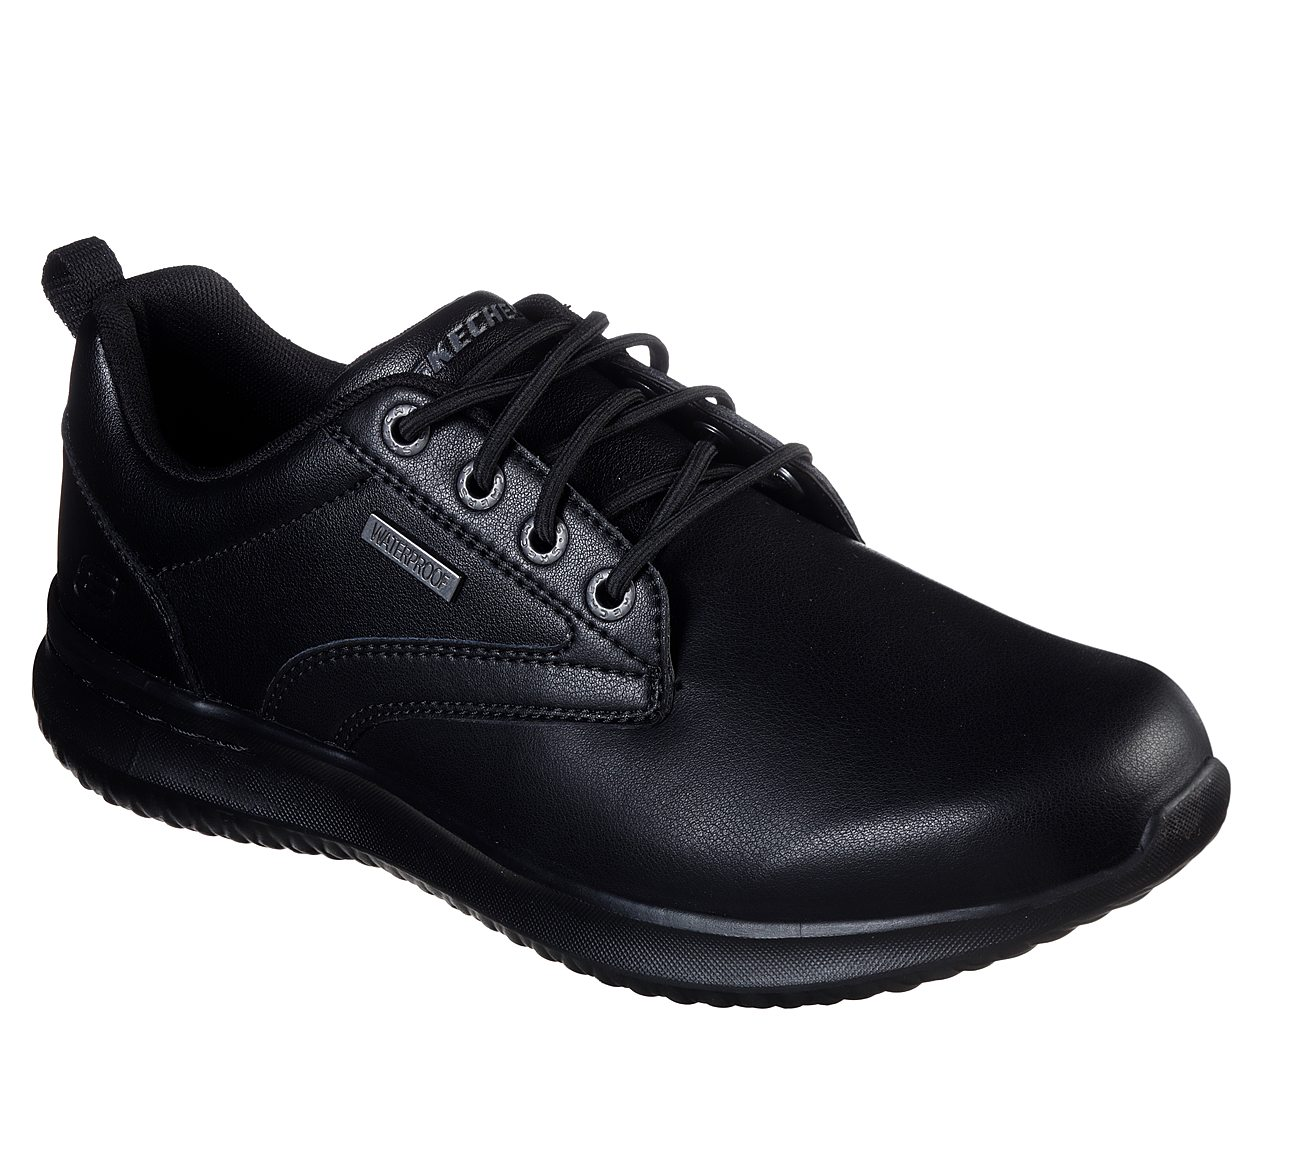 SKECHERS Delson - Antigo Comfort Shoes